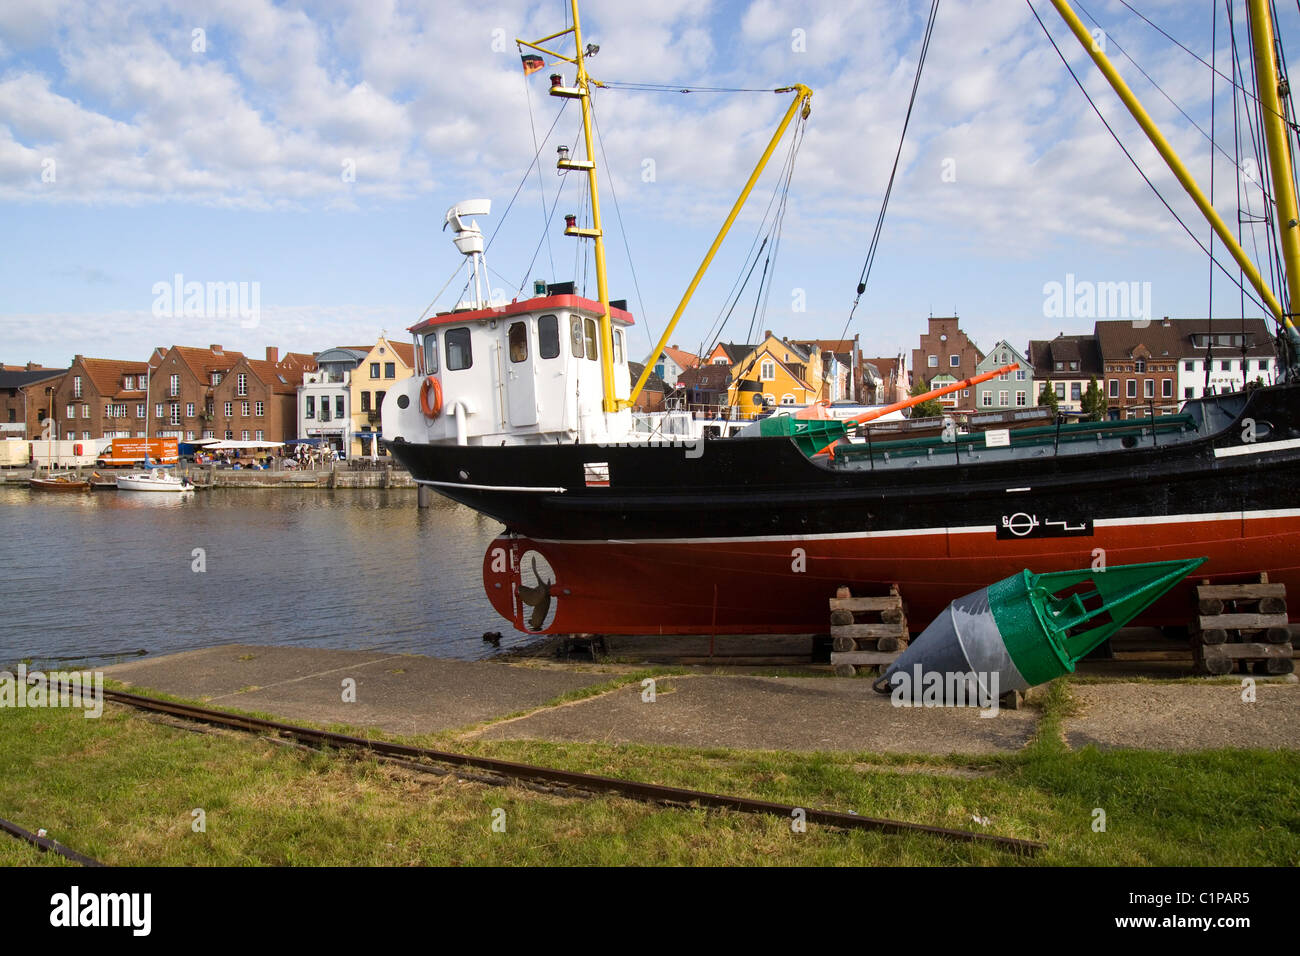 Germany, Husum, fishing boat moored in harbour - Stock Image